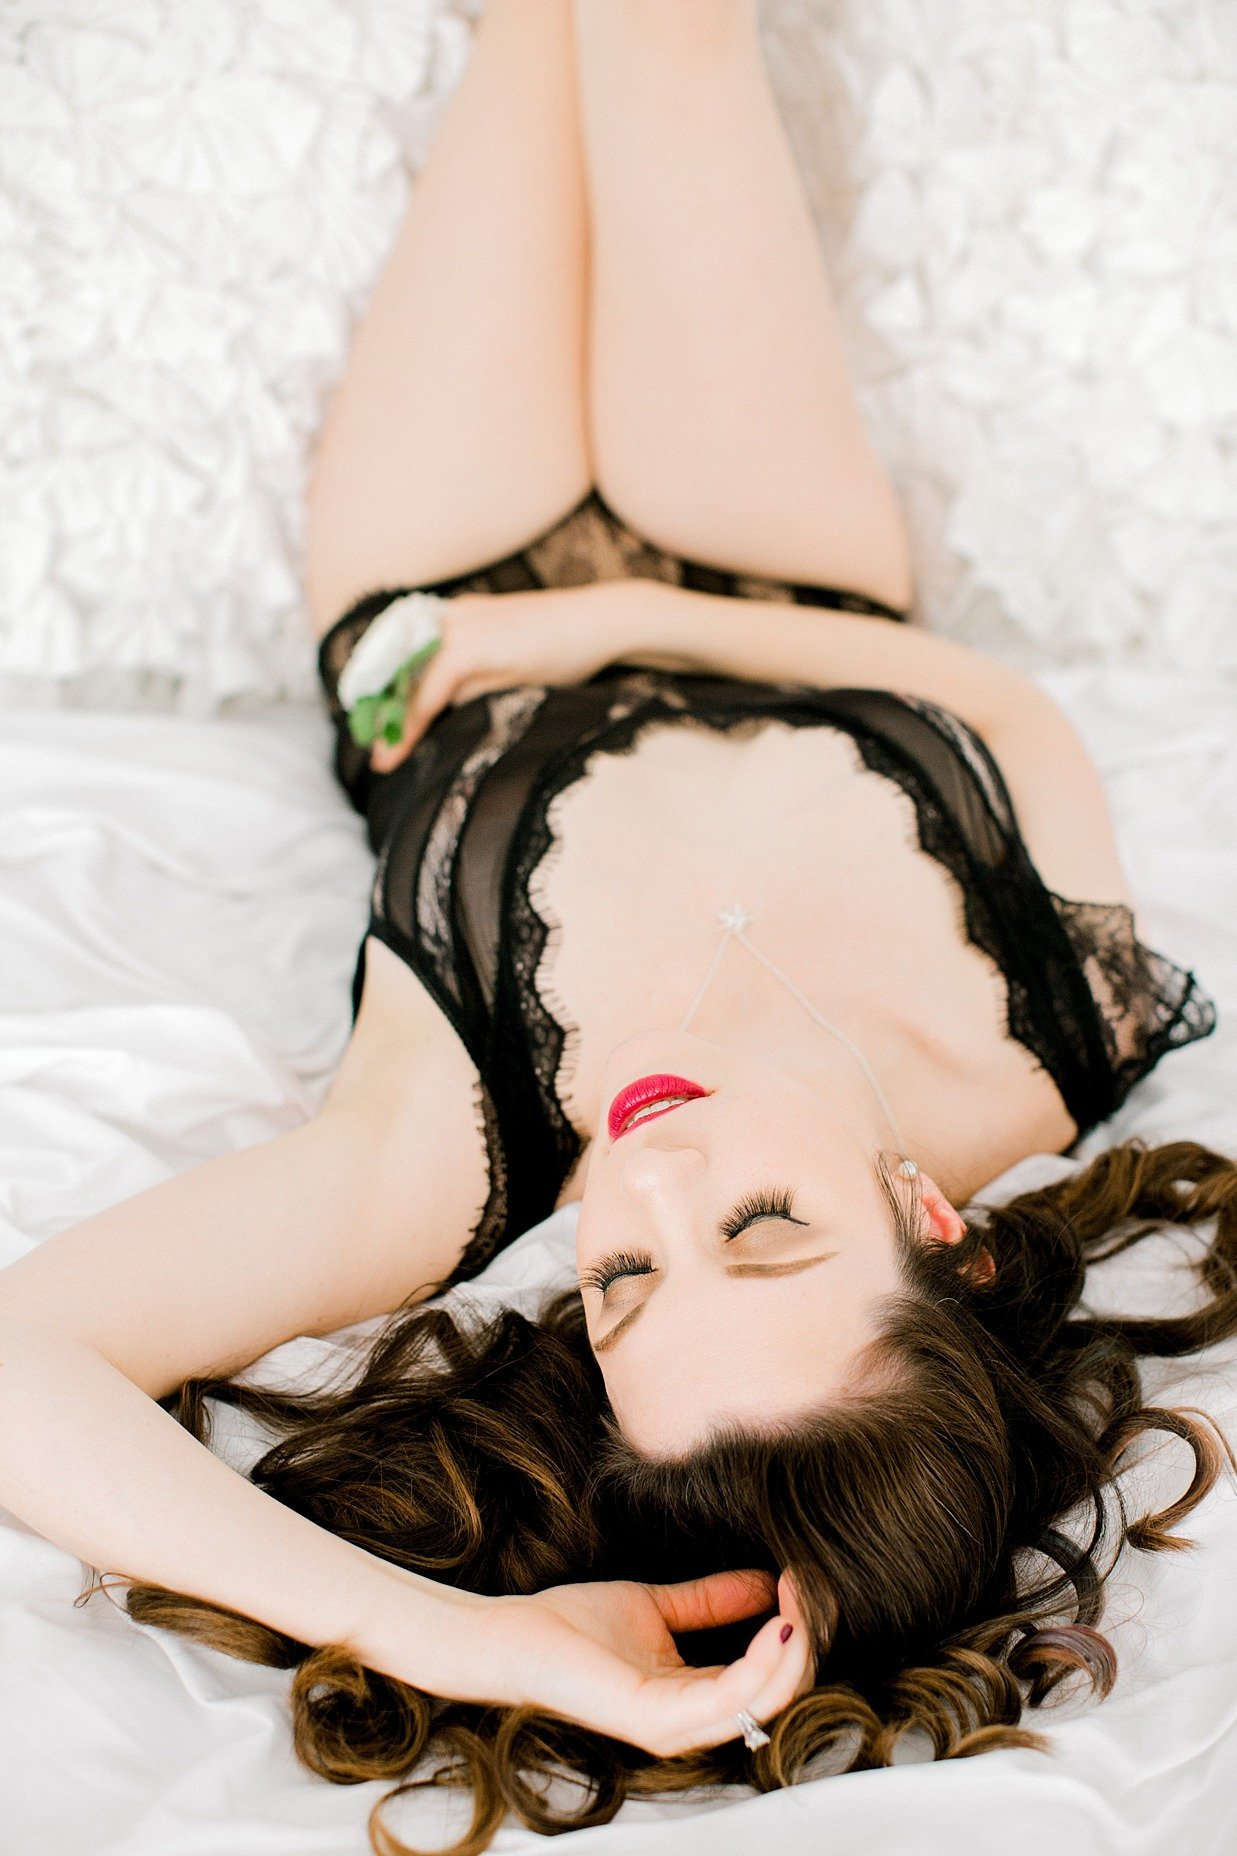 ER Anniversary Fine Art Bridal Boudoir Boho Lingerie Photos Norfolk VA Beach Yours Truly Portraiture-132